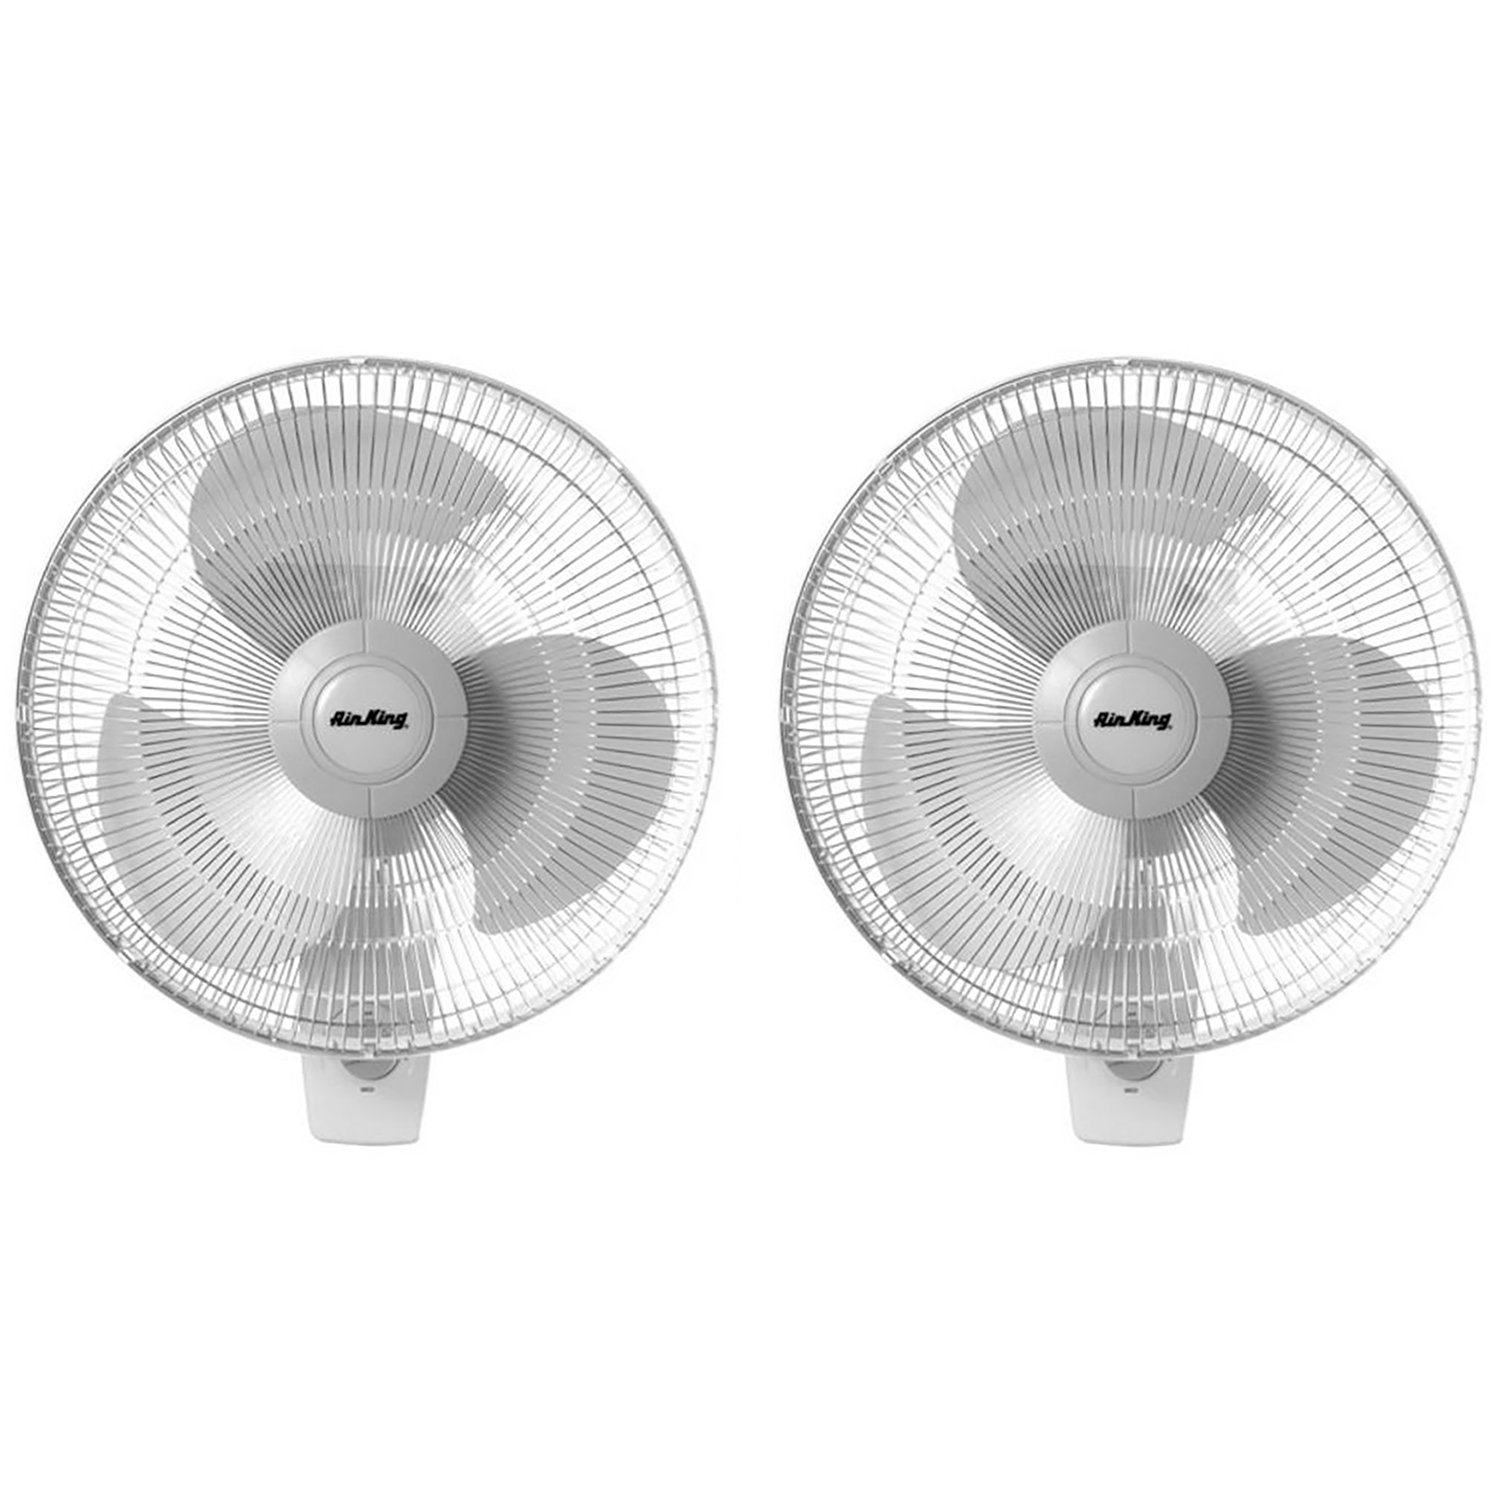 Air King 12'' Blade 3-Speed 1/50 HP Motor Oscillating Wall-Mount Fan (2 Pack)